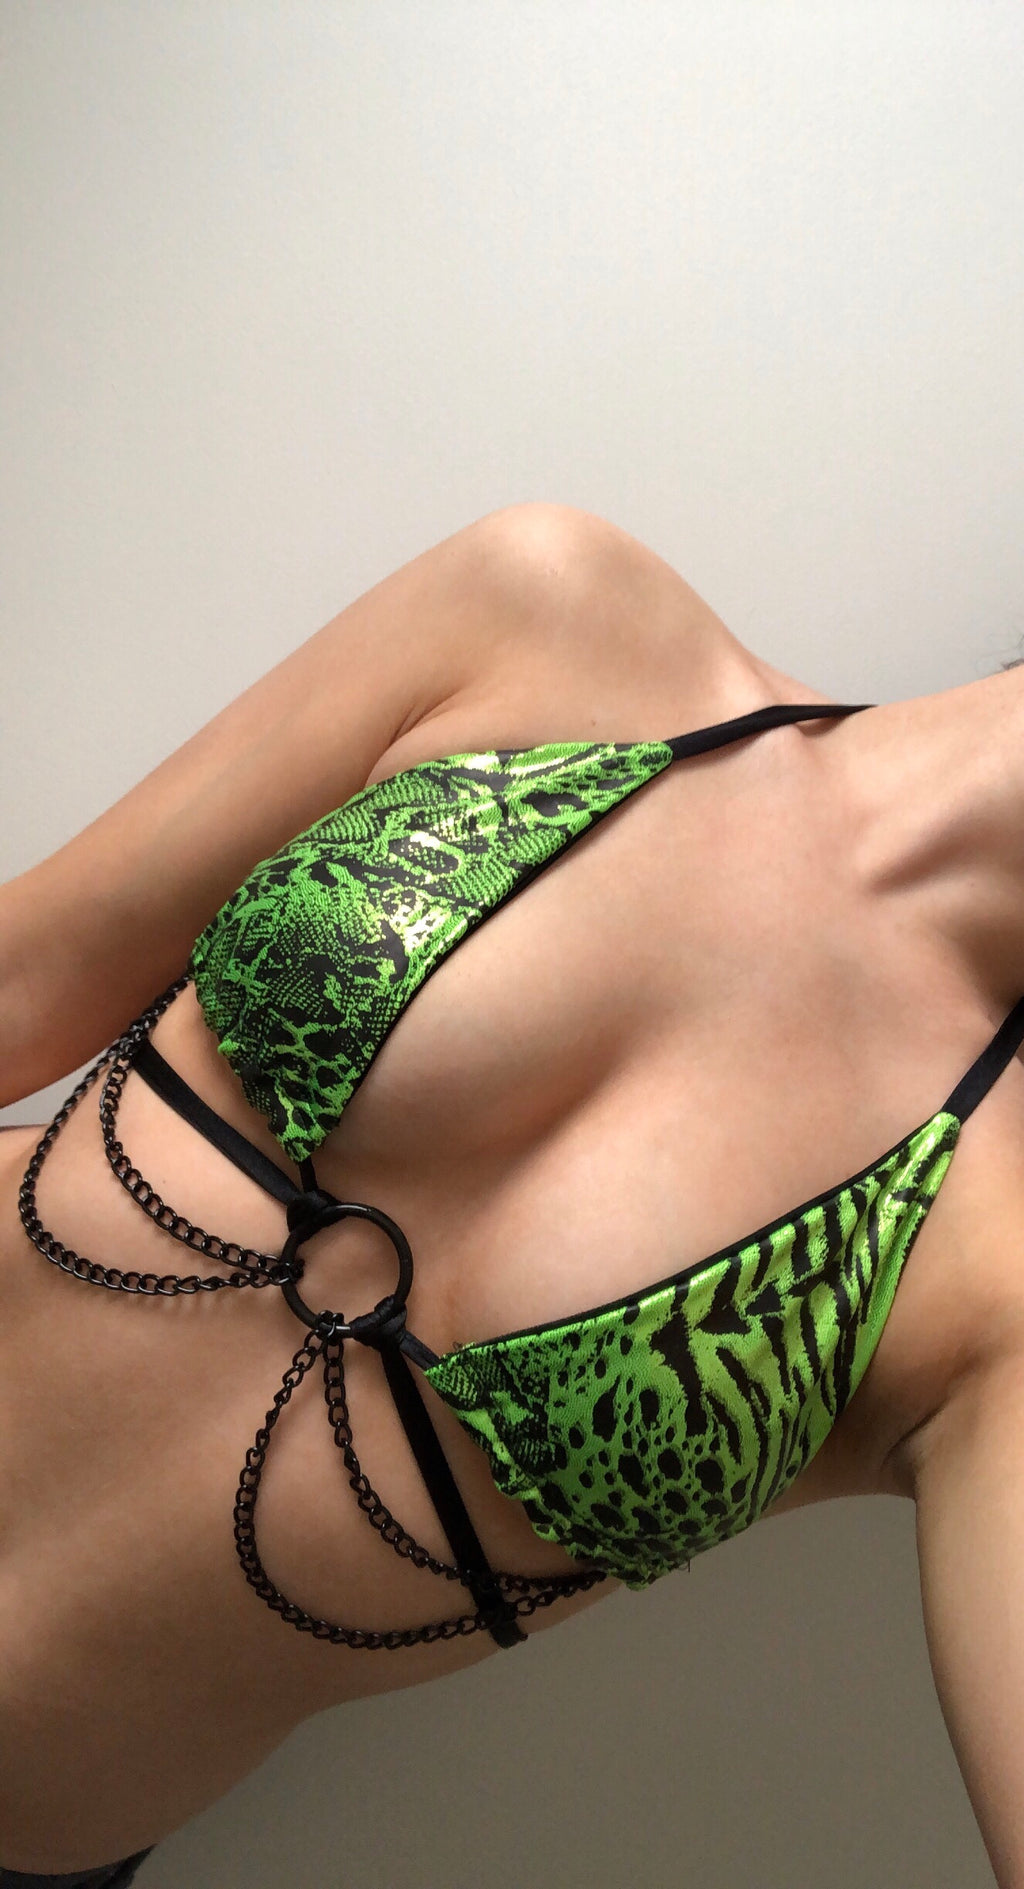 WILDLIFE CHAIN BRALETTE